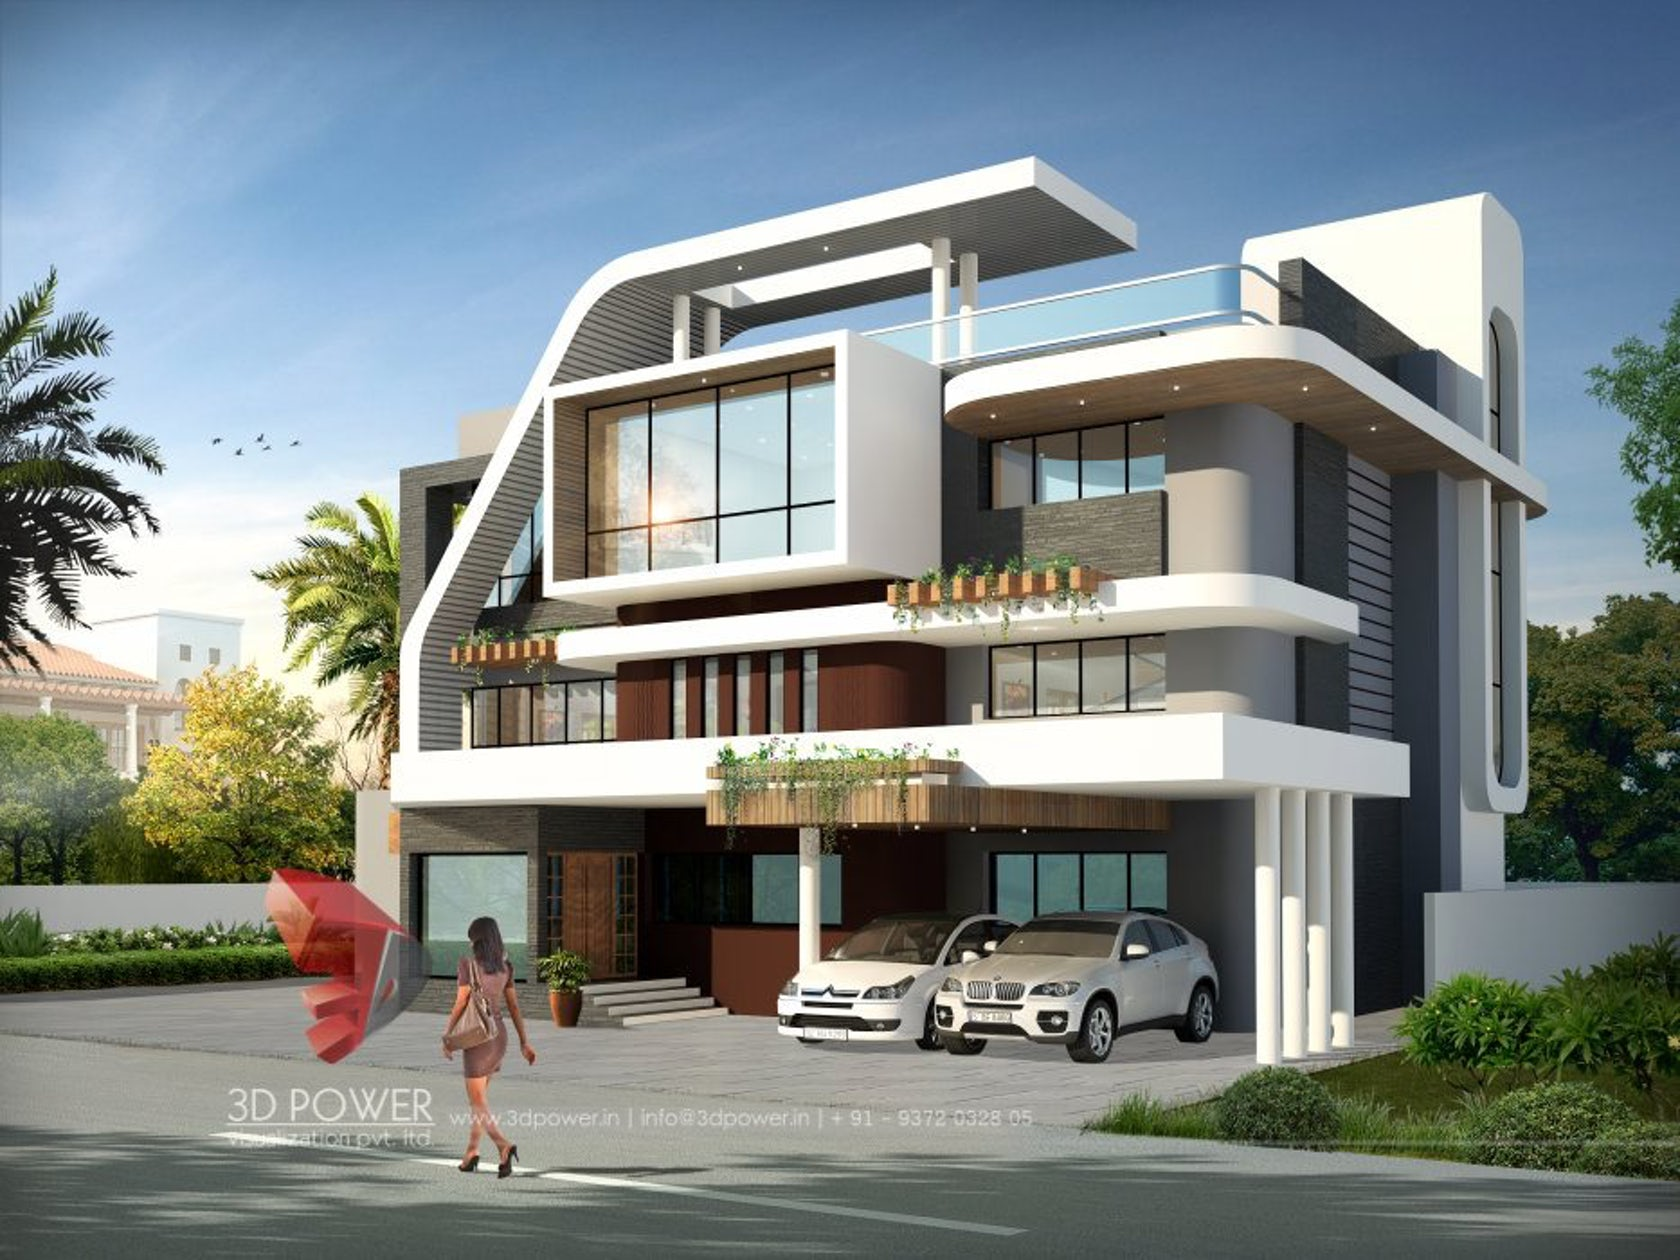 3d ultra modern bungalow exterior day rendering and for Singlex house design